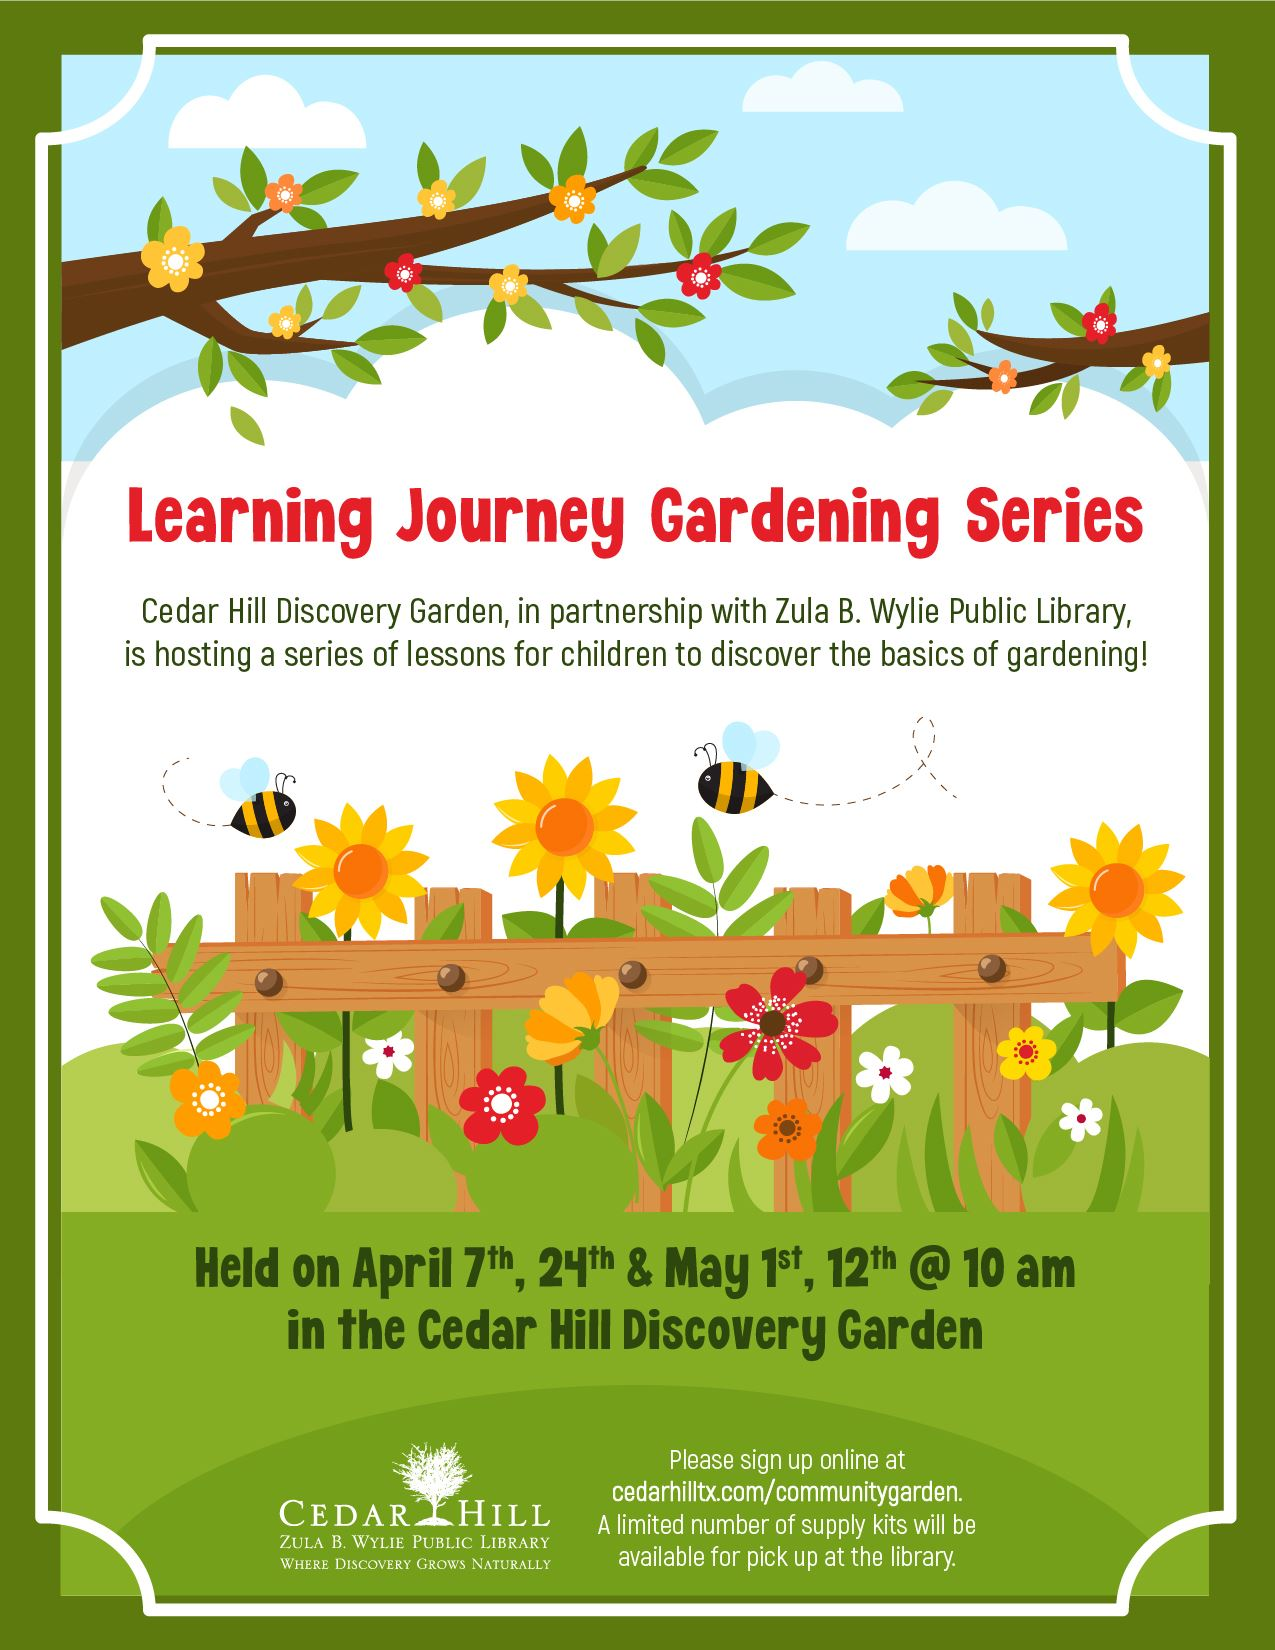 2021 Learning Journey Gardening Series